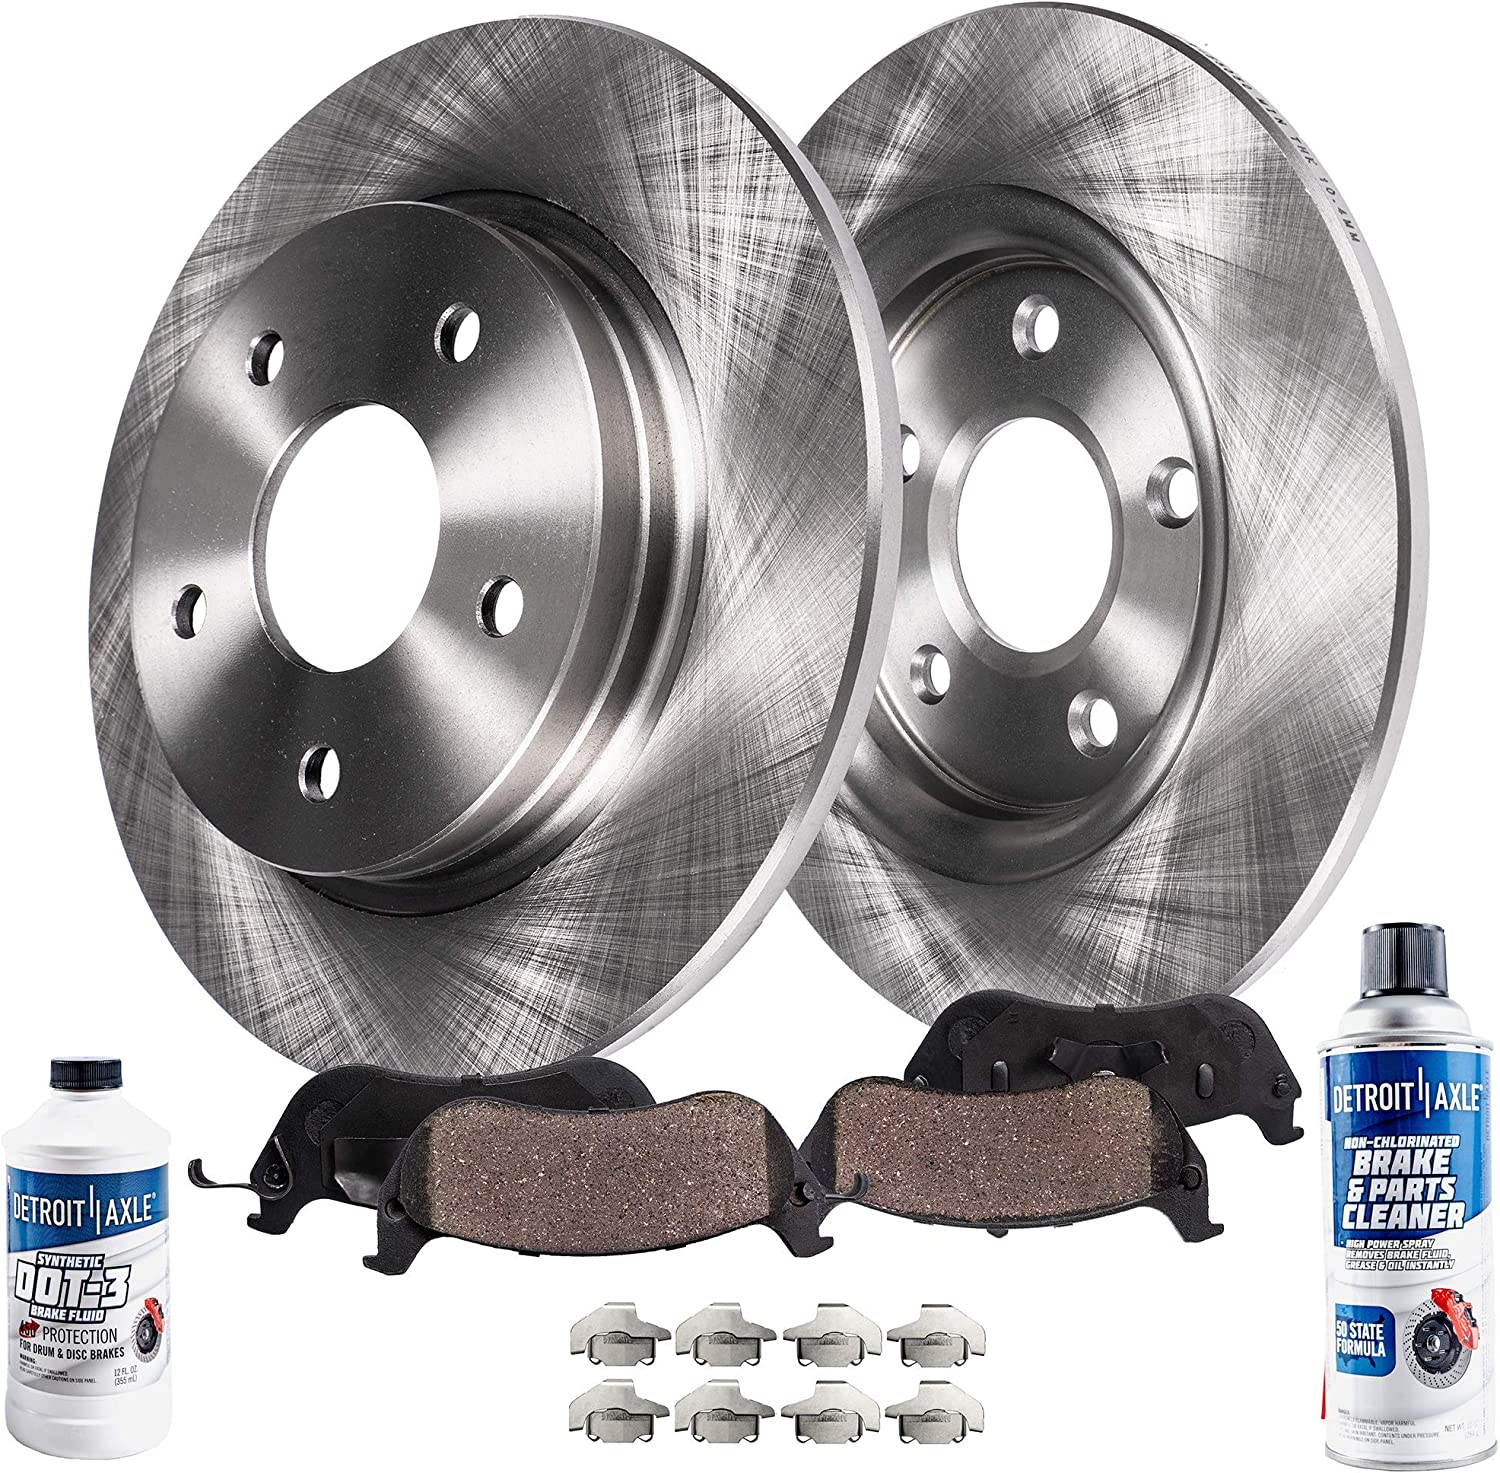 For Acura TL 1999-2008 Rear Brake Rotors with Ceramic Brake Pads Kit Brembo